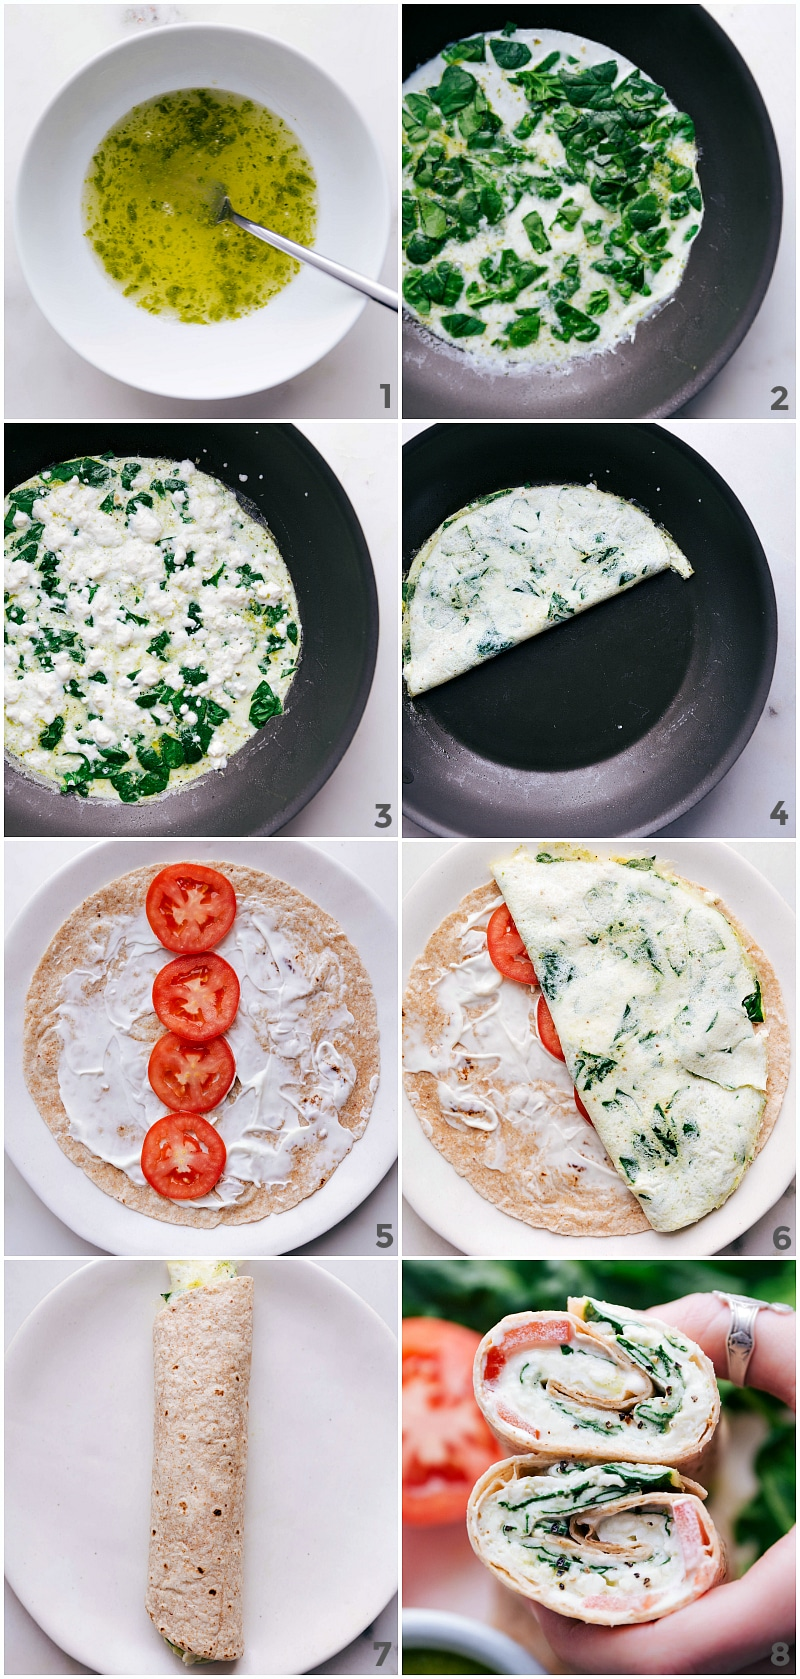 Process shots-- images of the egg whites being mixed with the pesto, then showing the spinach being mixed in, then everything being added to a tortilla and rolled up.